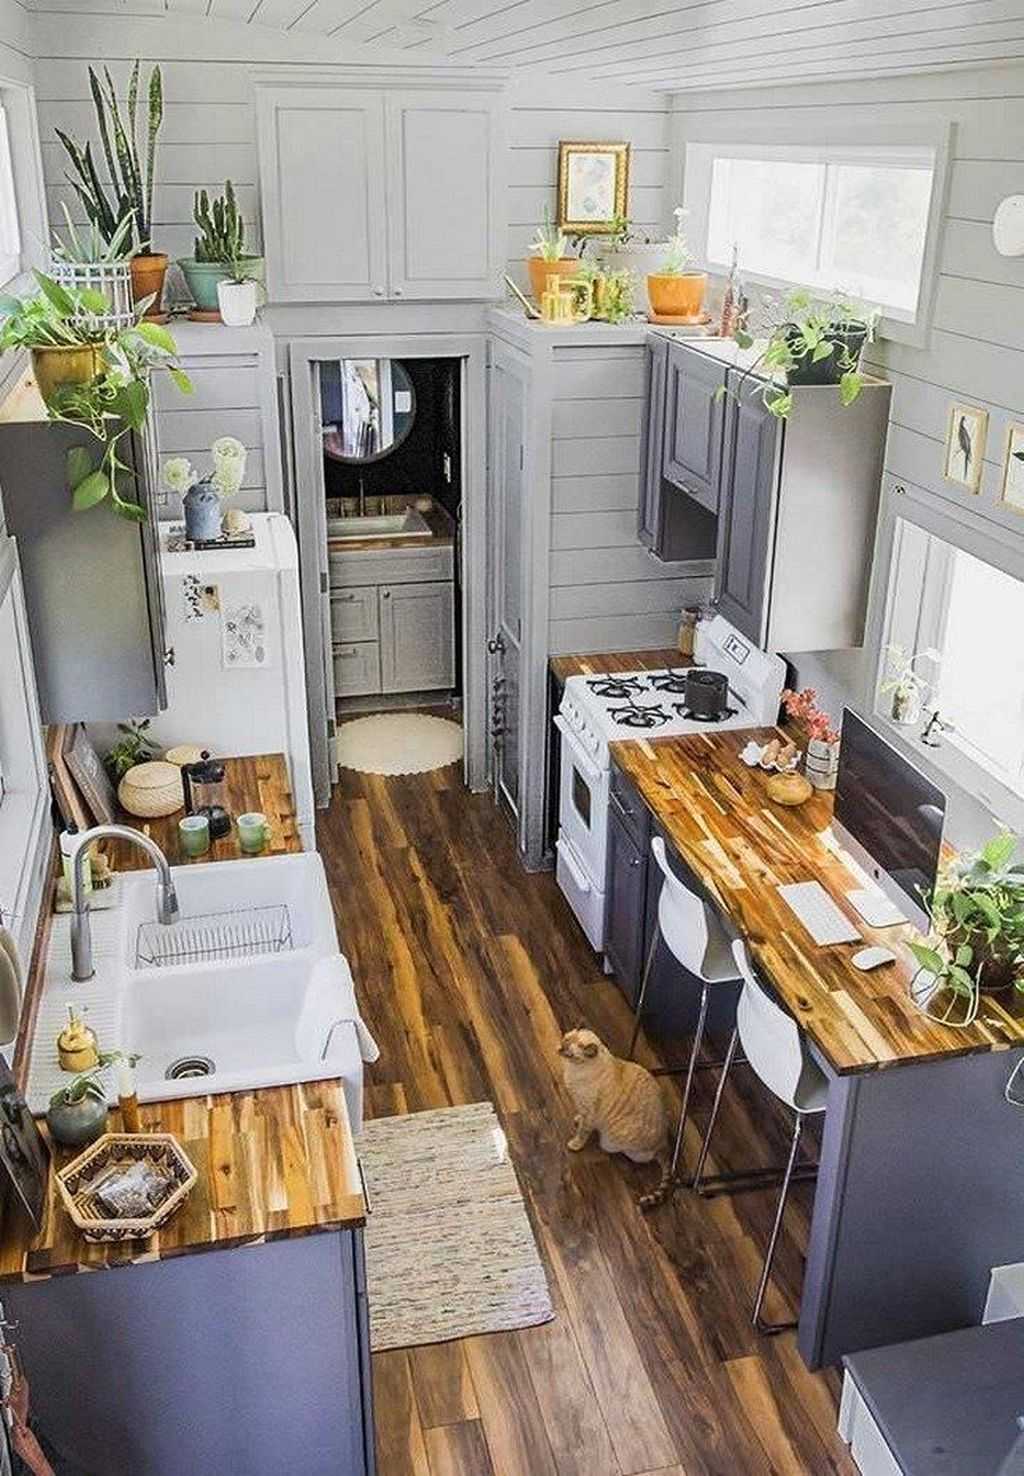 Enchanting Kitchen Design Ideas For Small Spaces39